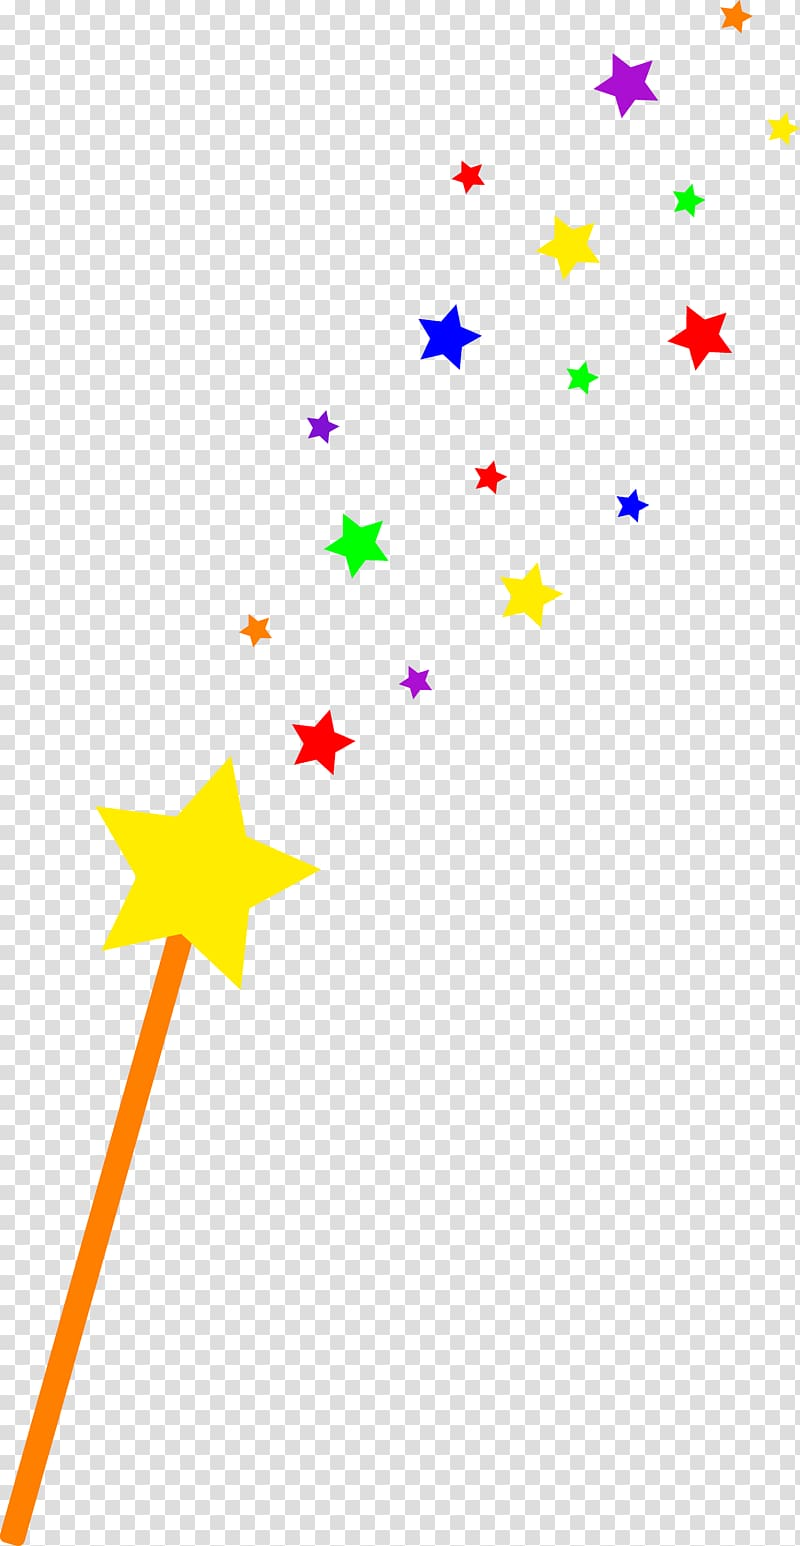 Wand Magician , Star Princess transparent background PNG.